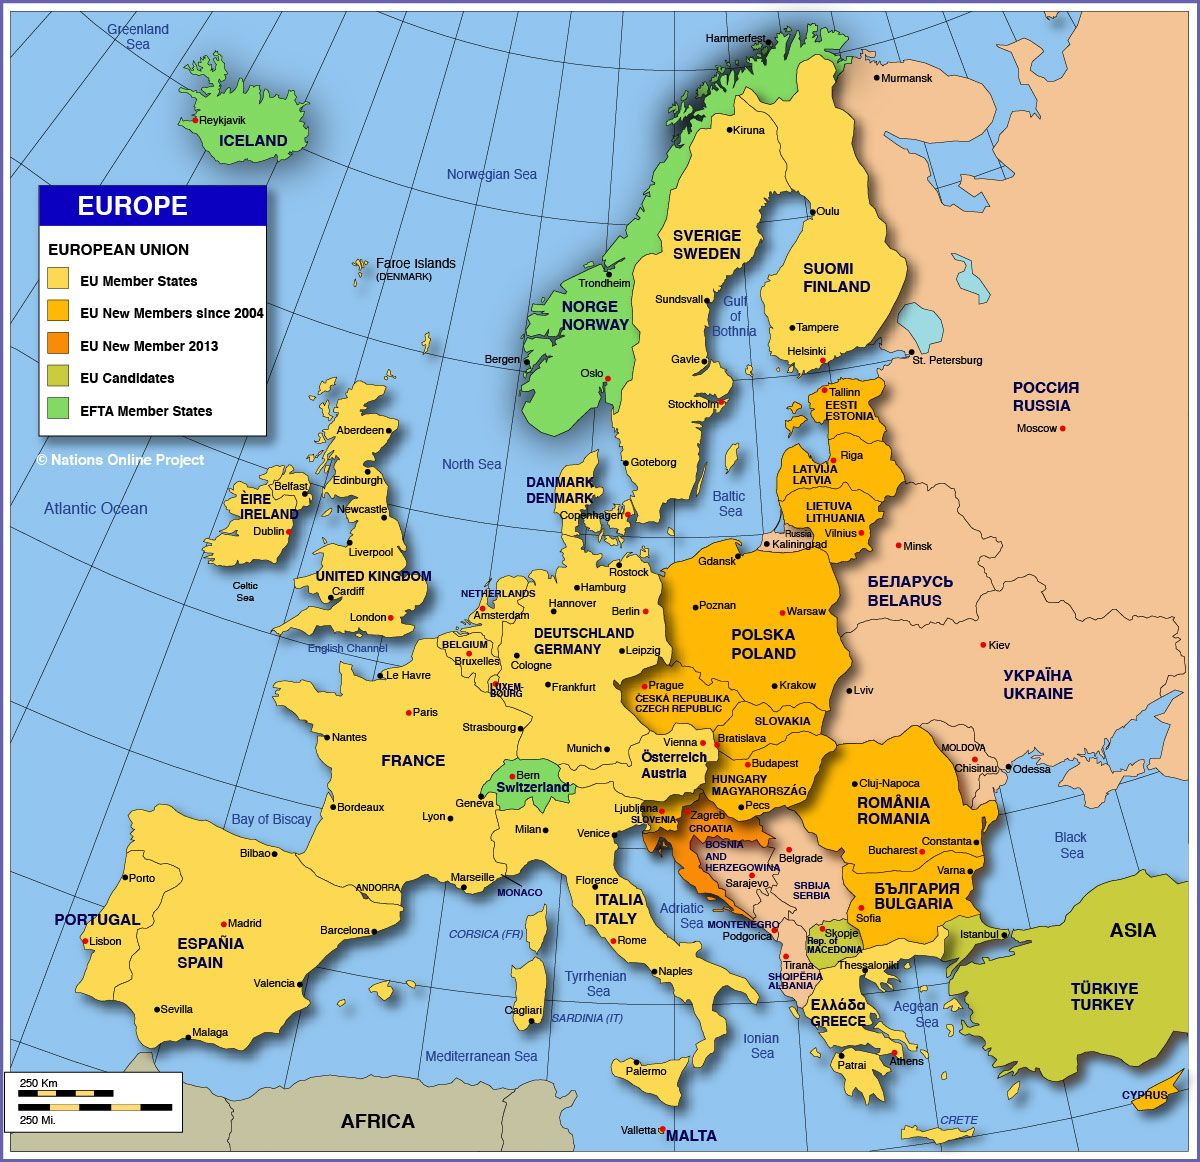 constantinople on map of europe Eastern Europe Constantinople/Istanbul Moscow Kiev Russia (USSR